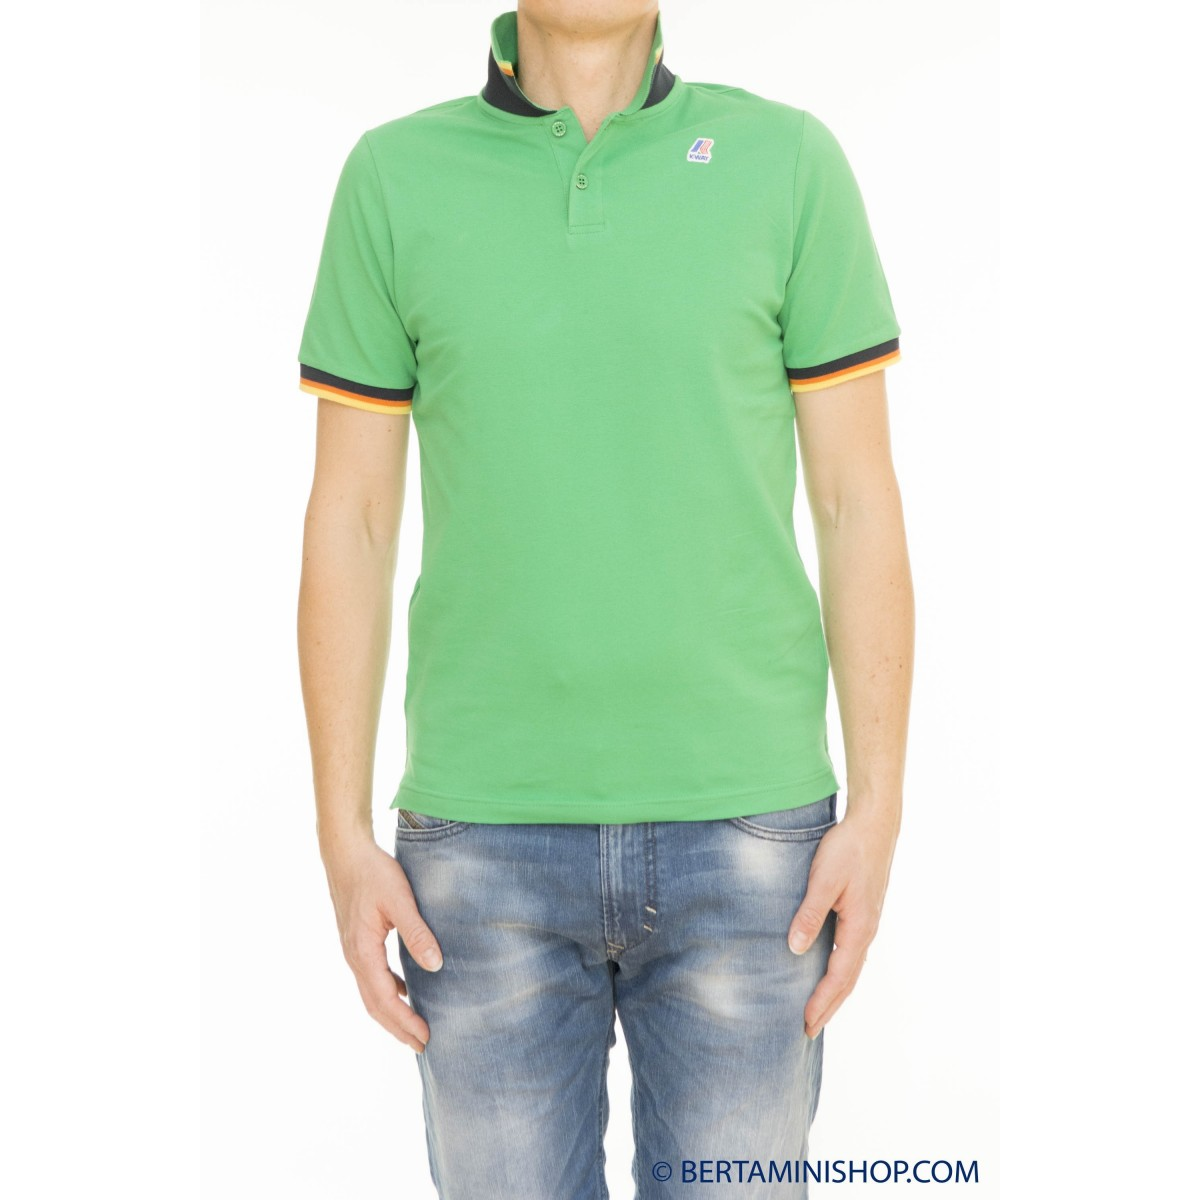 Polo manica corta uomo K way - Vincent contrast k0057r0 polo slim contrasto B21 - Kelly green